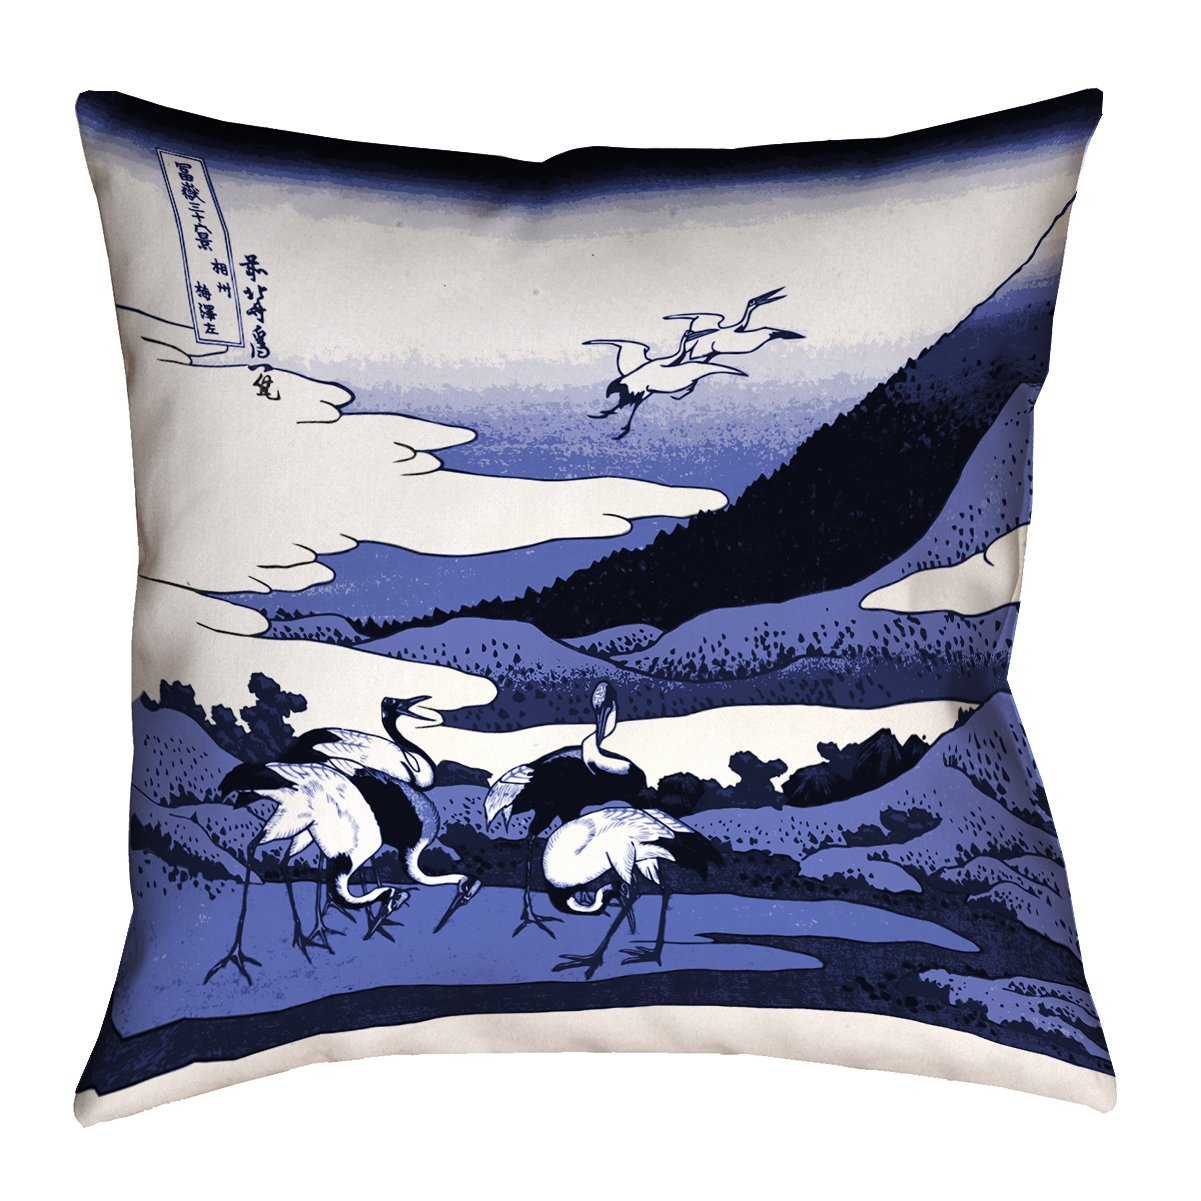 ArtVerse Katsushika Hokusai 36' x 36' Floor Double Sided Print with Concealed Zipper & Insert Japanese Cranes in Blue Pillow HOK034F3636L